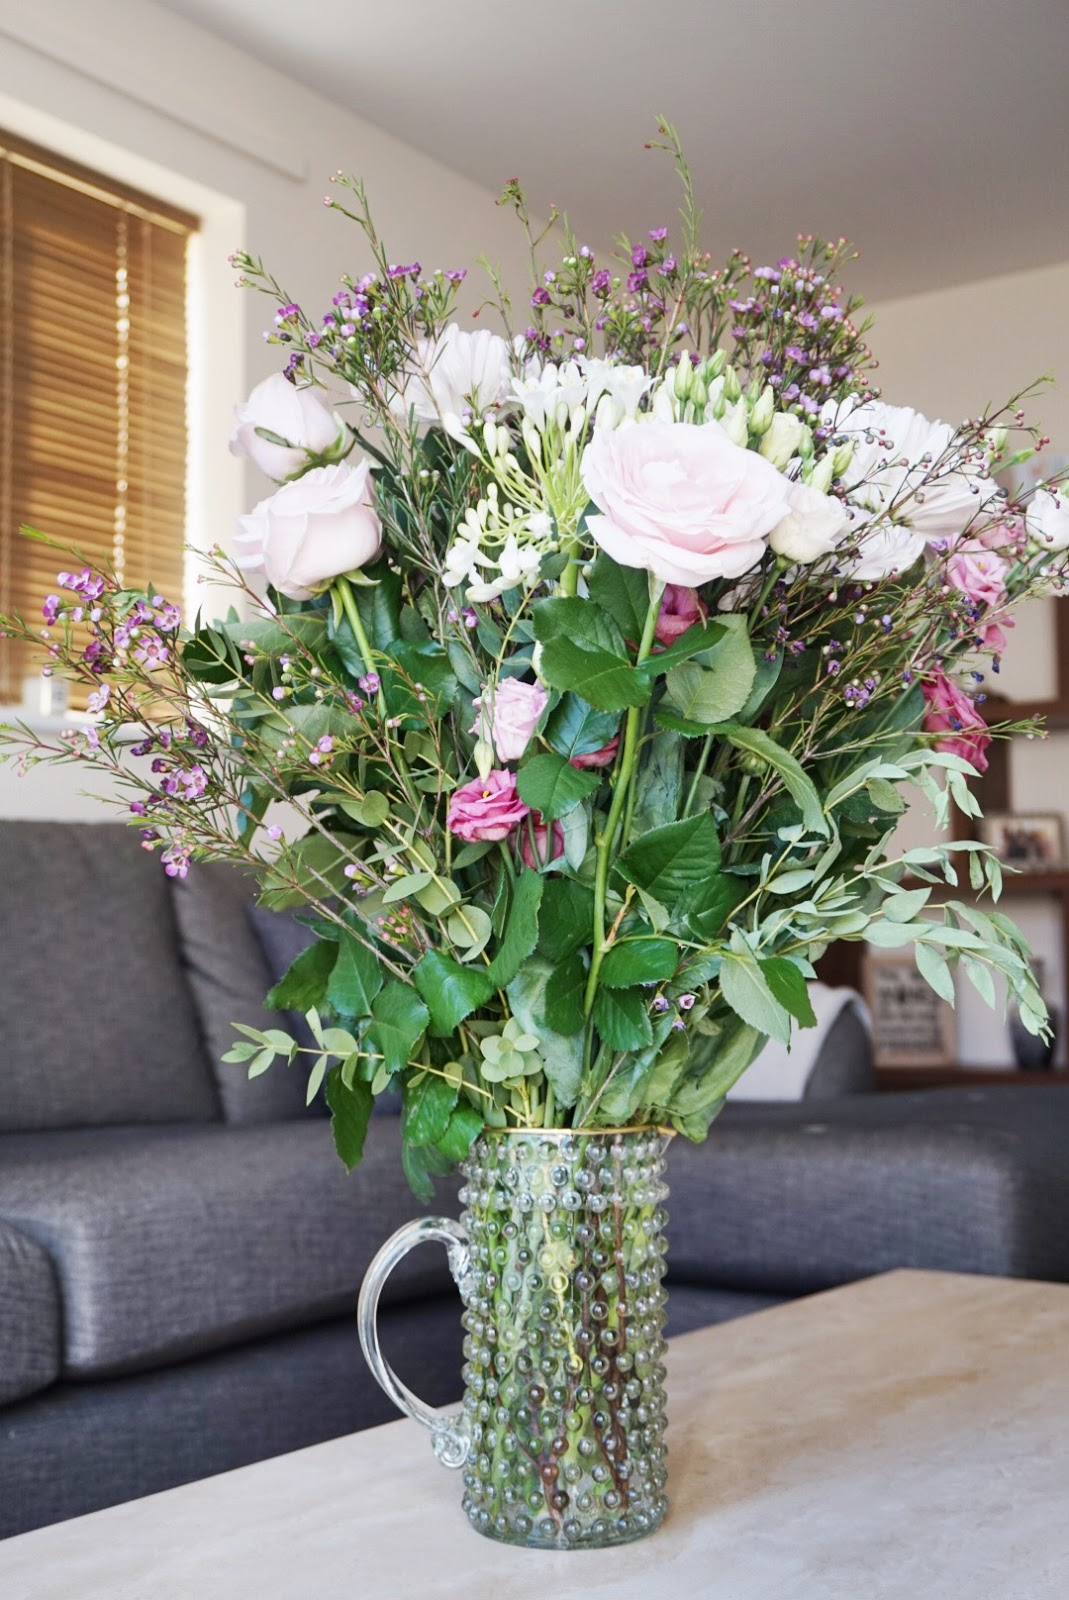 Ok bouquet the life of pye ive seen ok bouquet floating around on social media for quite a while and ive always admired their beautiful flower arrangements so when they offered to izmirmasajfo